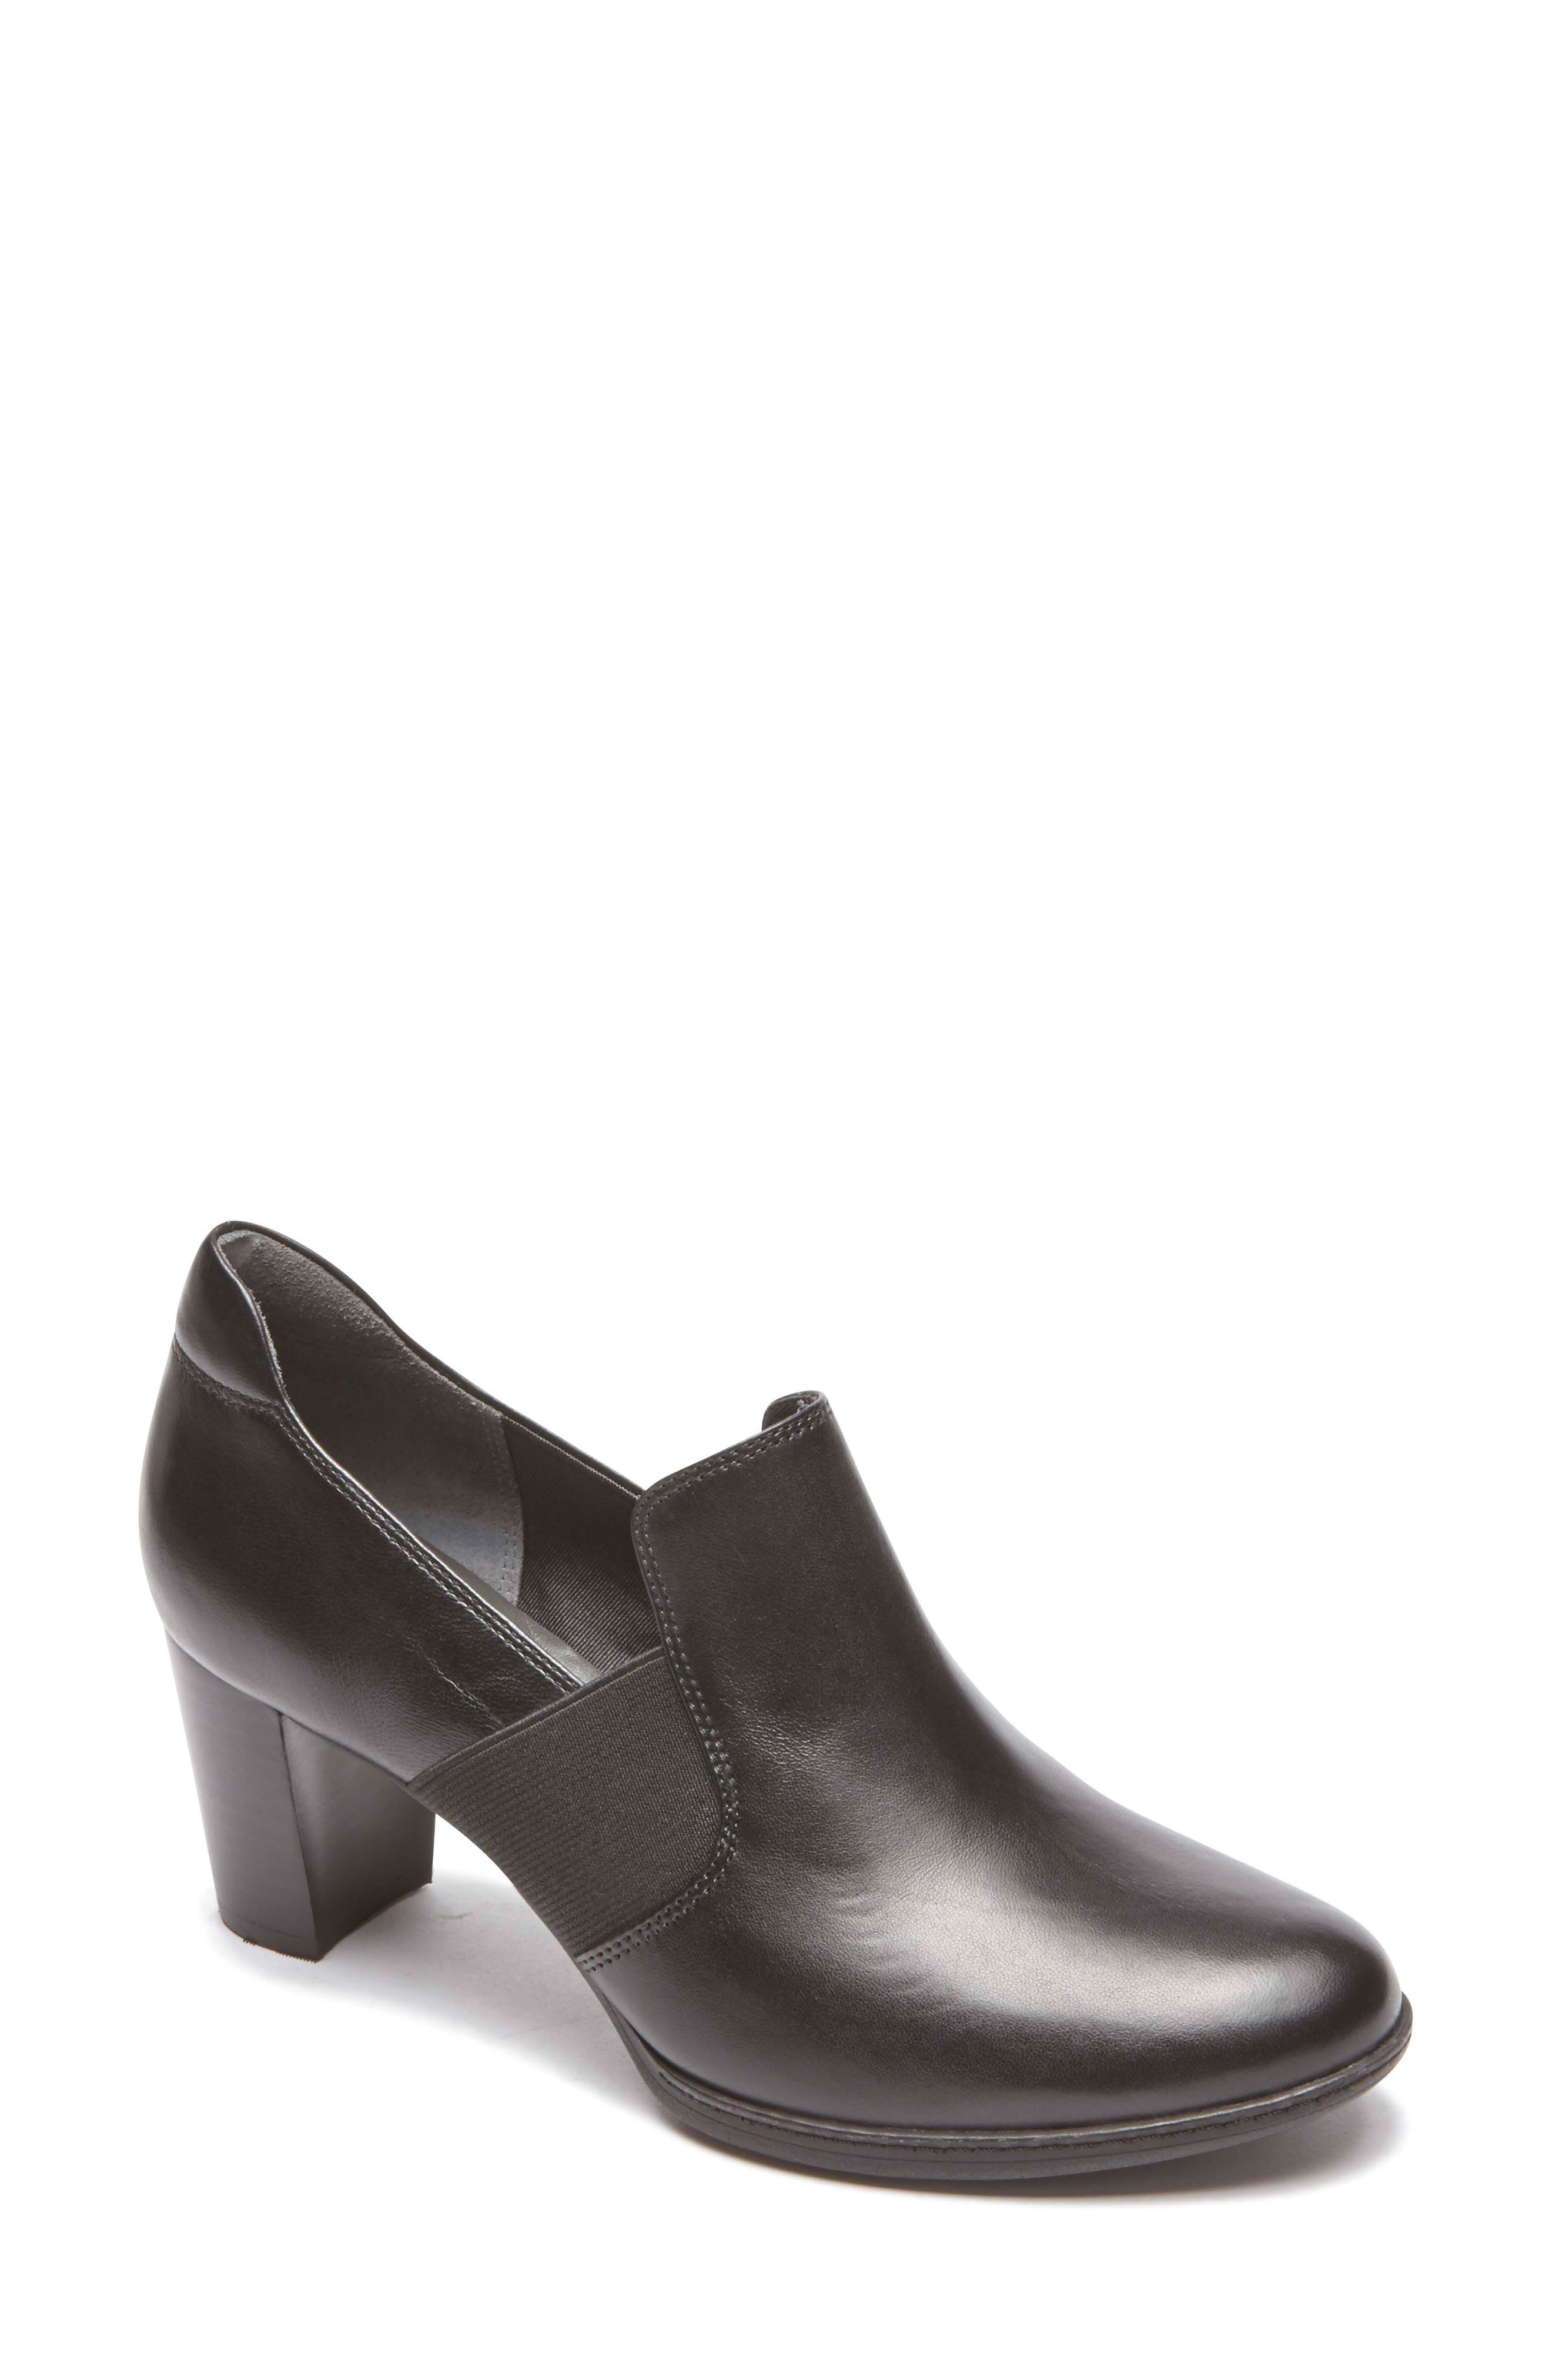 ROCKPORT, Chaya Loafer Pump, Main thumbnail 1, color, BLACK LEATHER